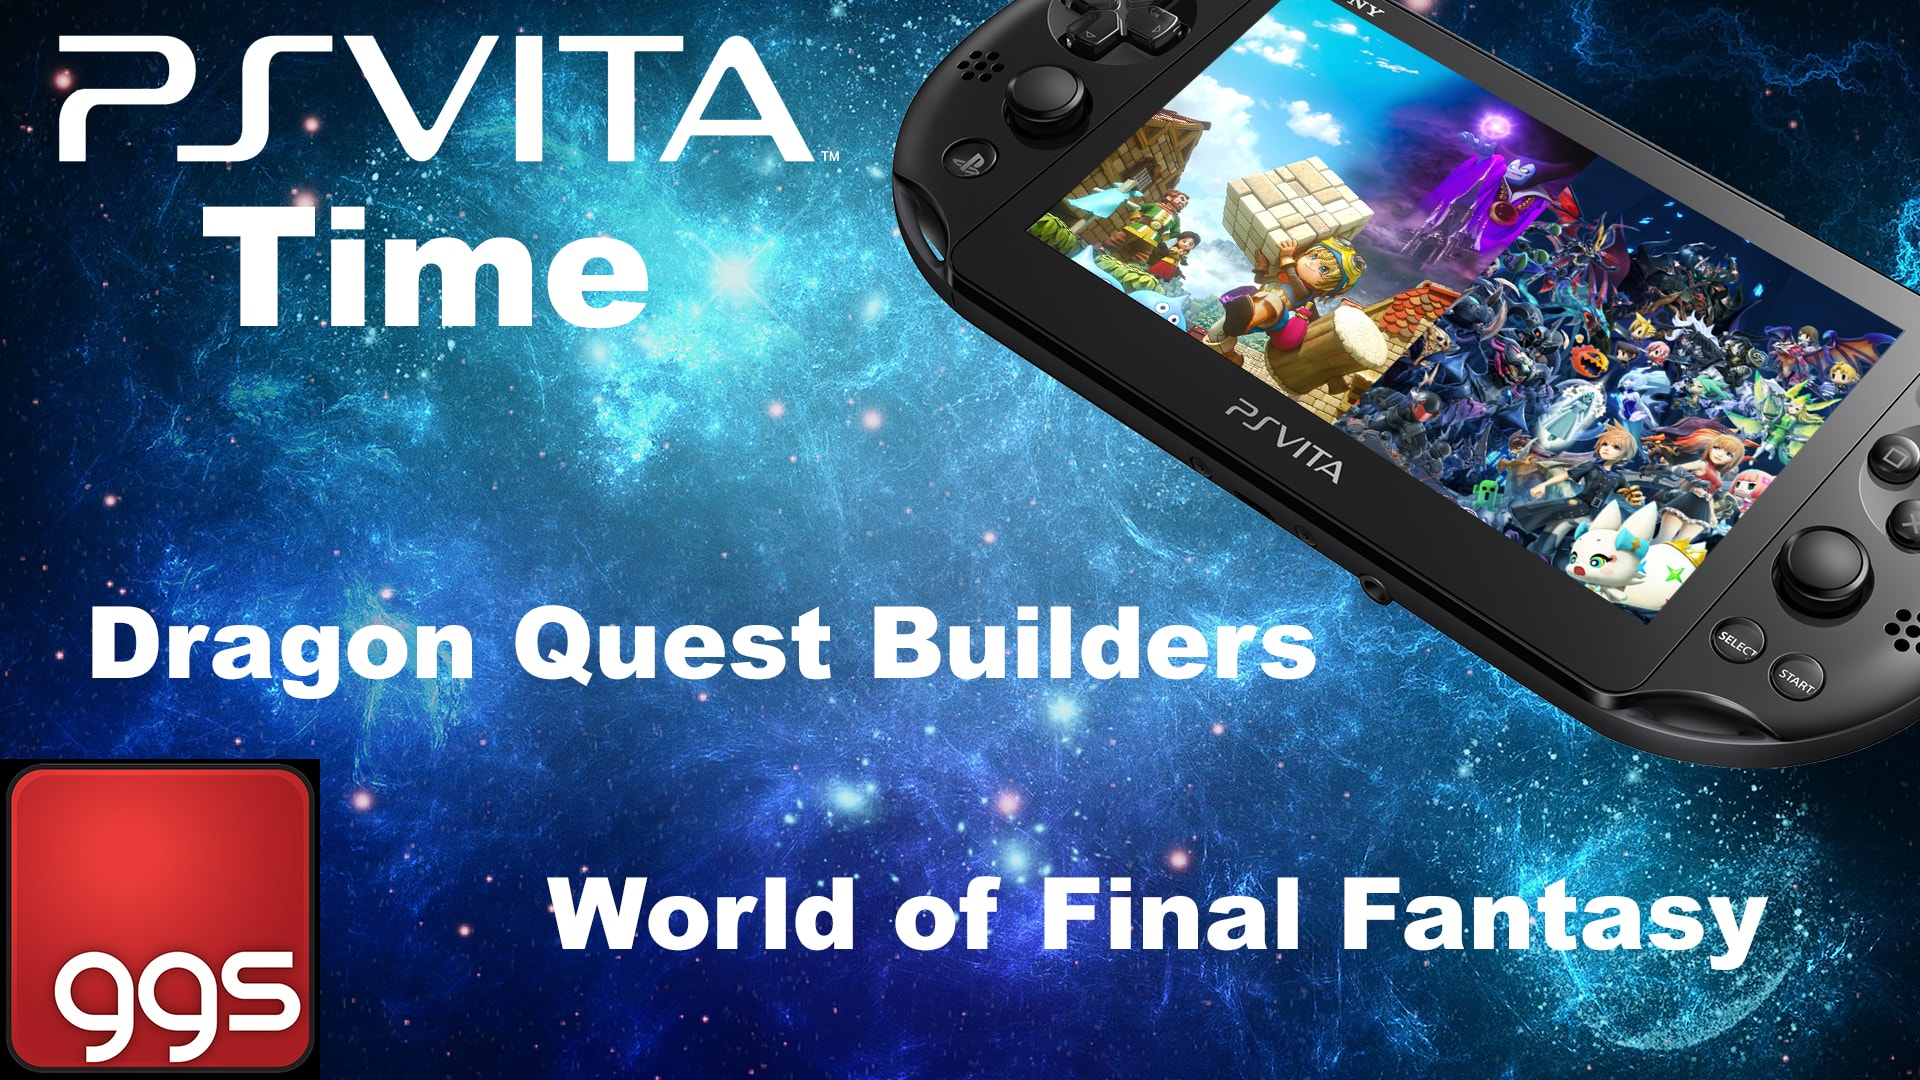 Vita Talk Time – Dragon Quest Builders and World of Final Fantasy